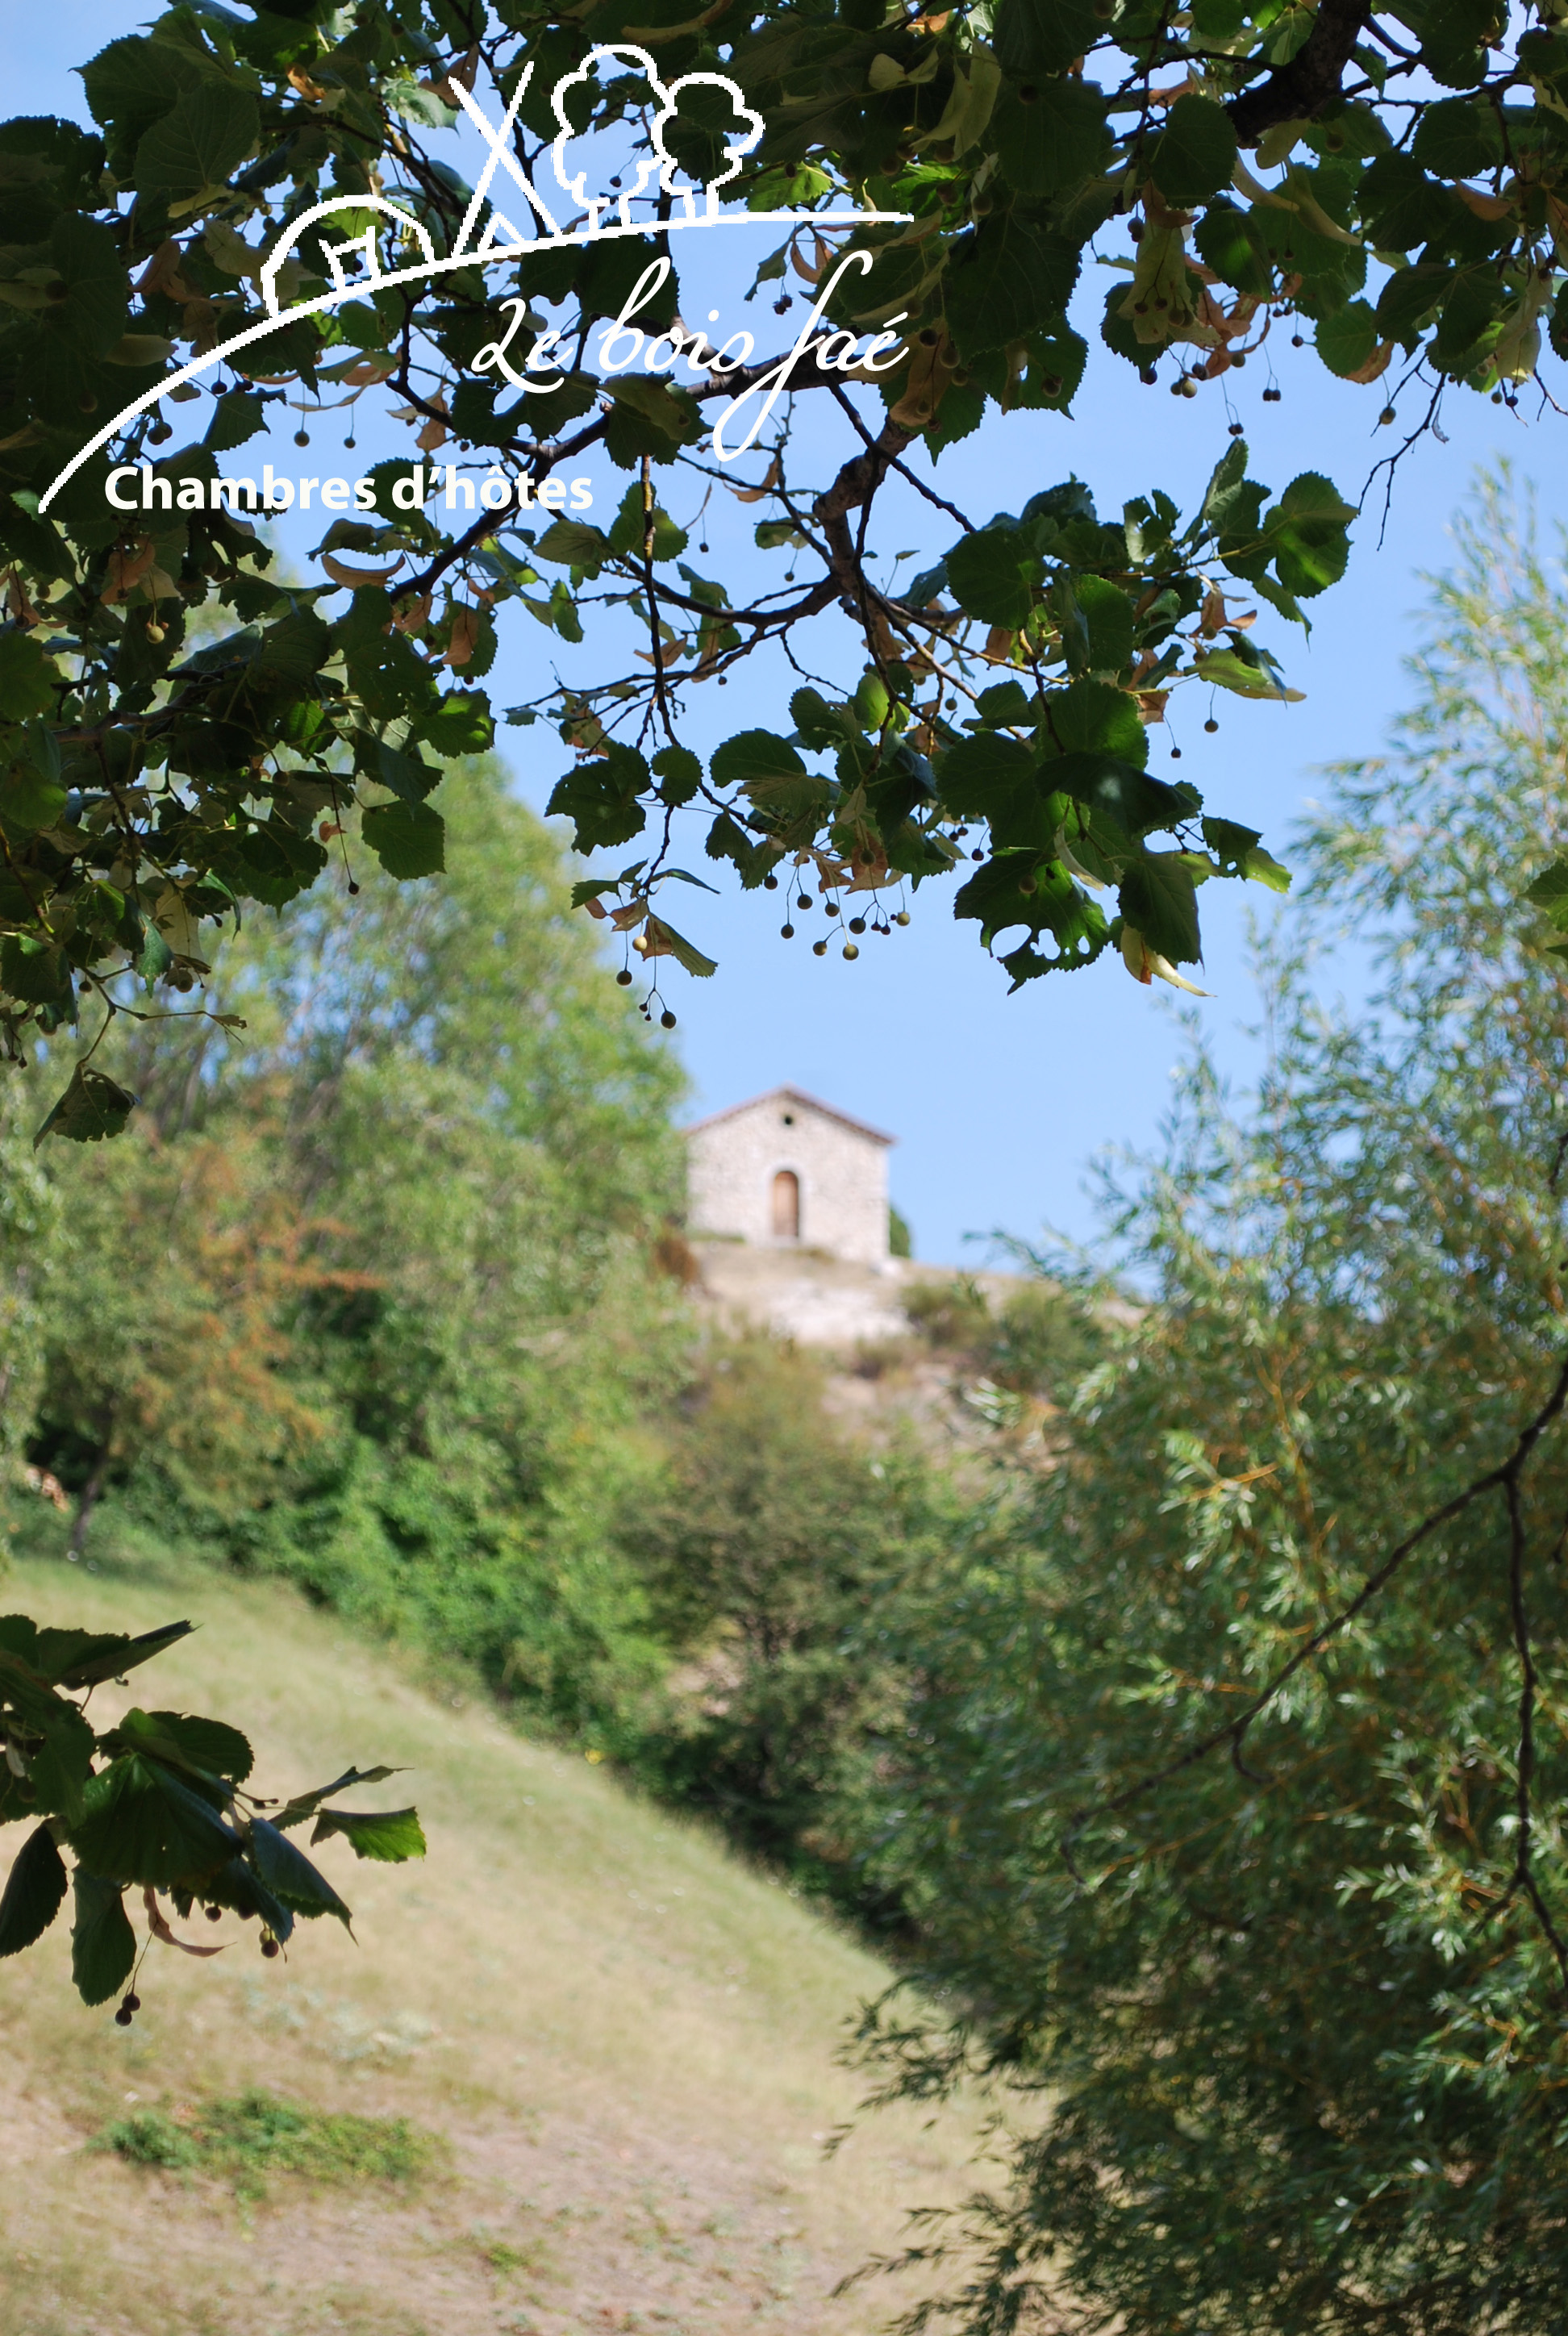 CHAPELLE DE SAINT LURENT+logo.jpg